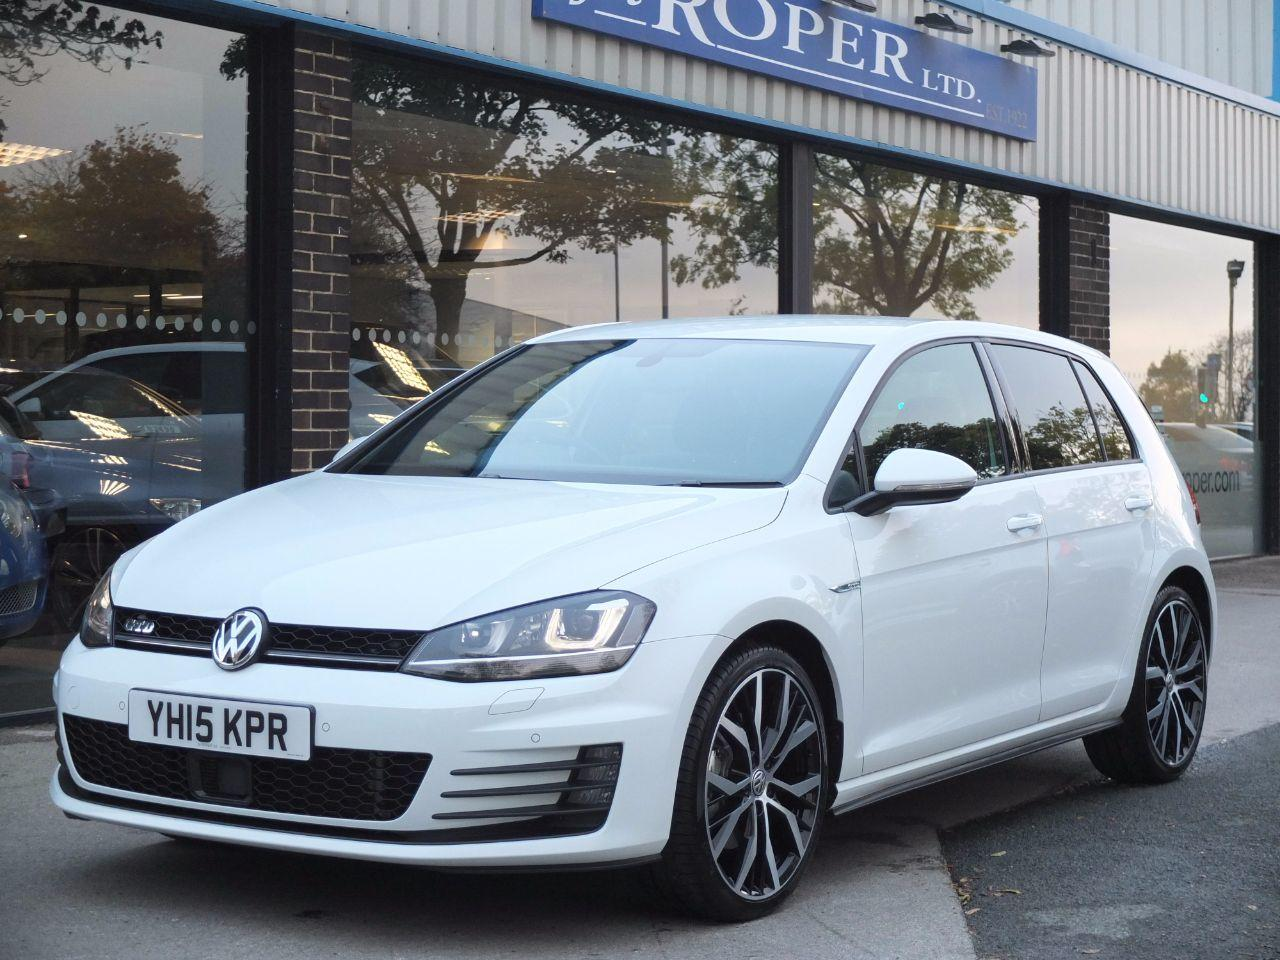 Volkswagen Golf 2.0 TDI GTD 184ps 5 door DSG Hatchback Diesel Pure WhiteVolkswagen Golf 2.0 TDI GTD 184ps 5 door DSG Hatchback Diesel Pure White at fa Roper Ltd Bradford